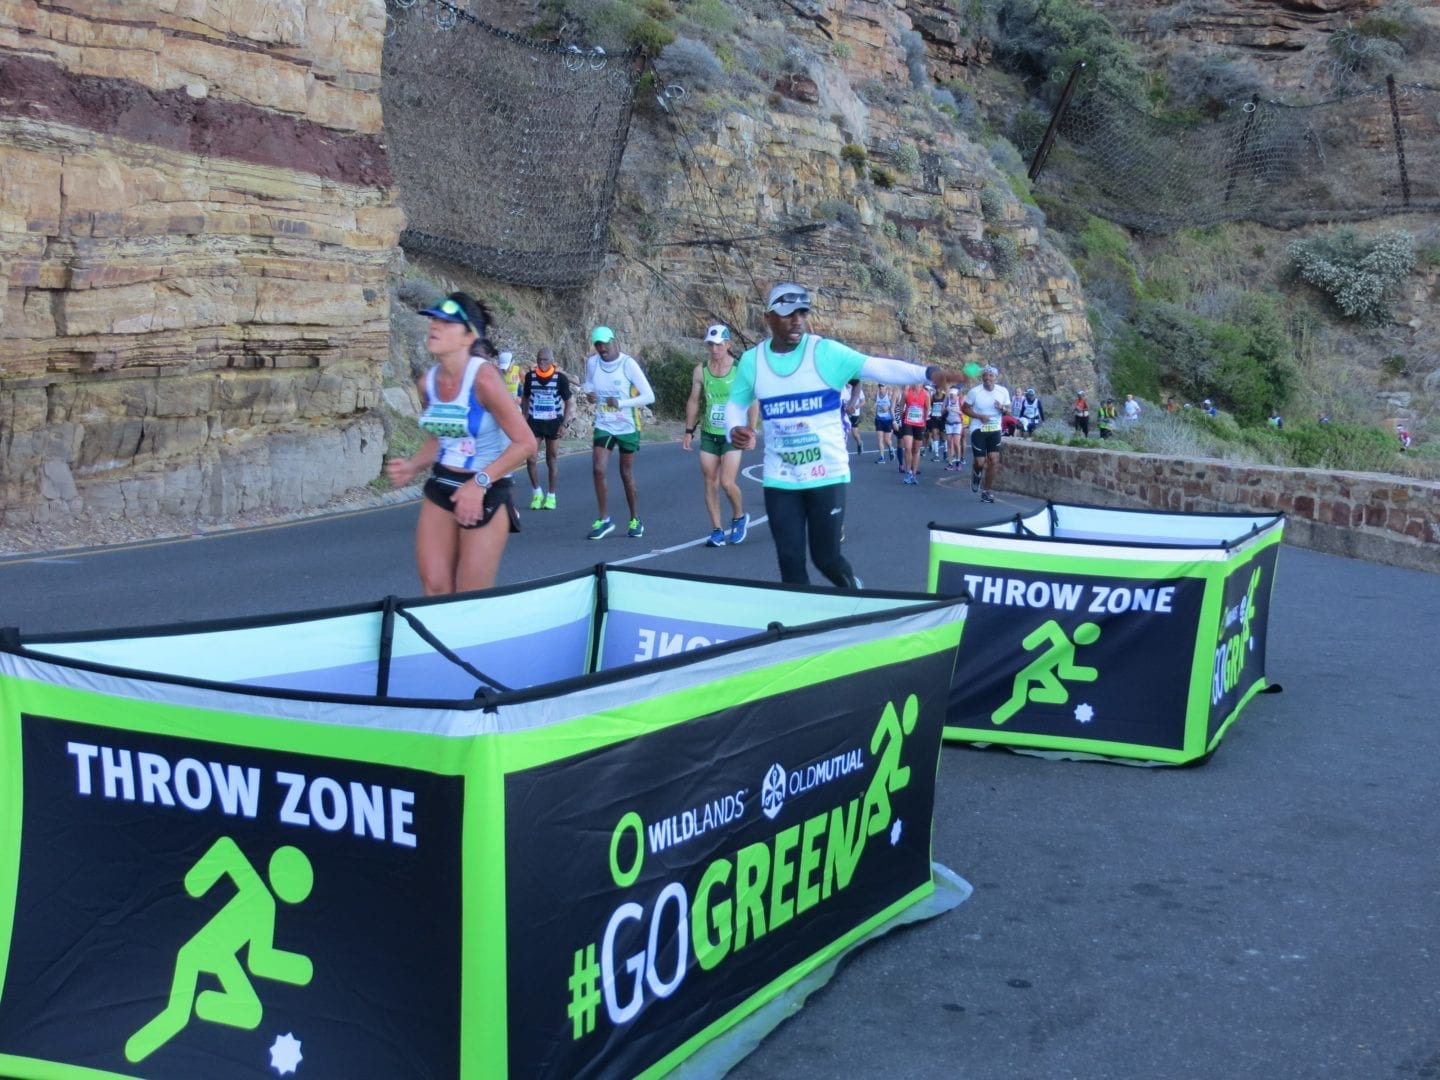 Clean-up crews were hard at work at the 2017 Two Oceans Marathon in Cape Town.